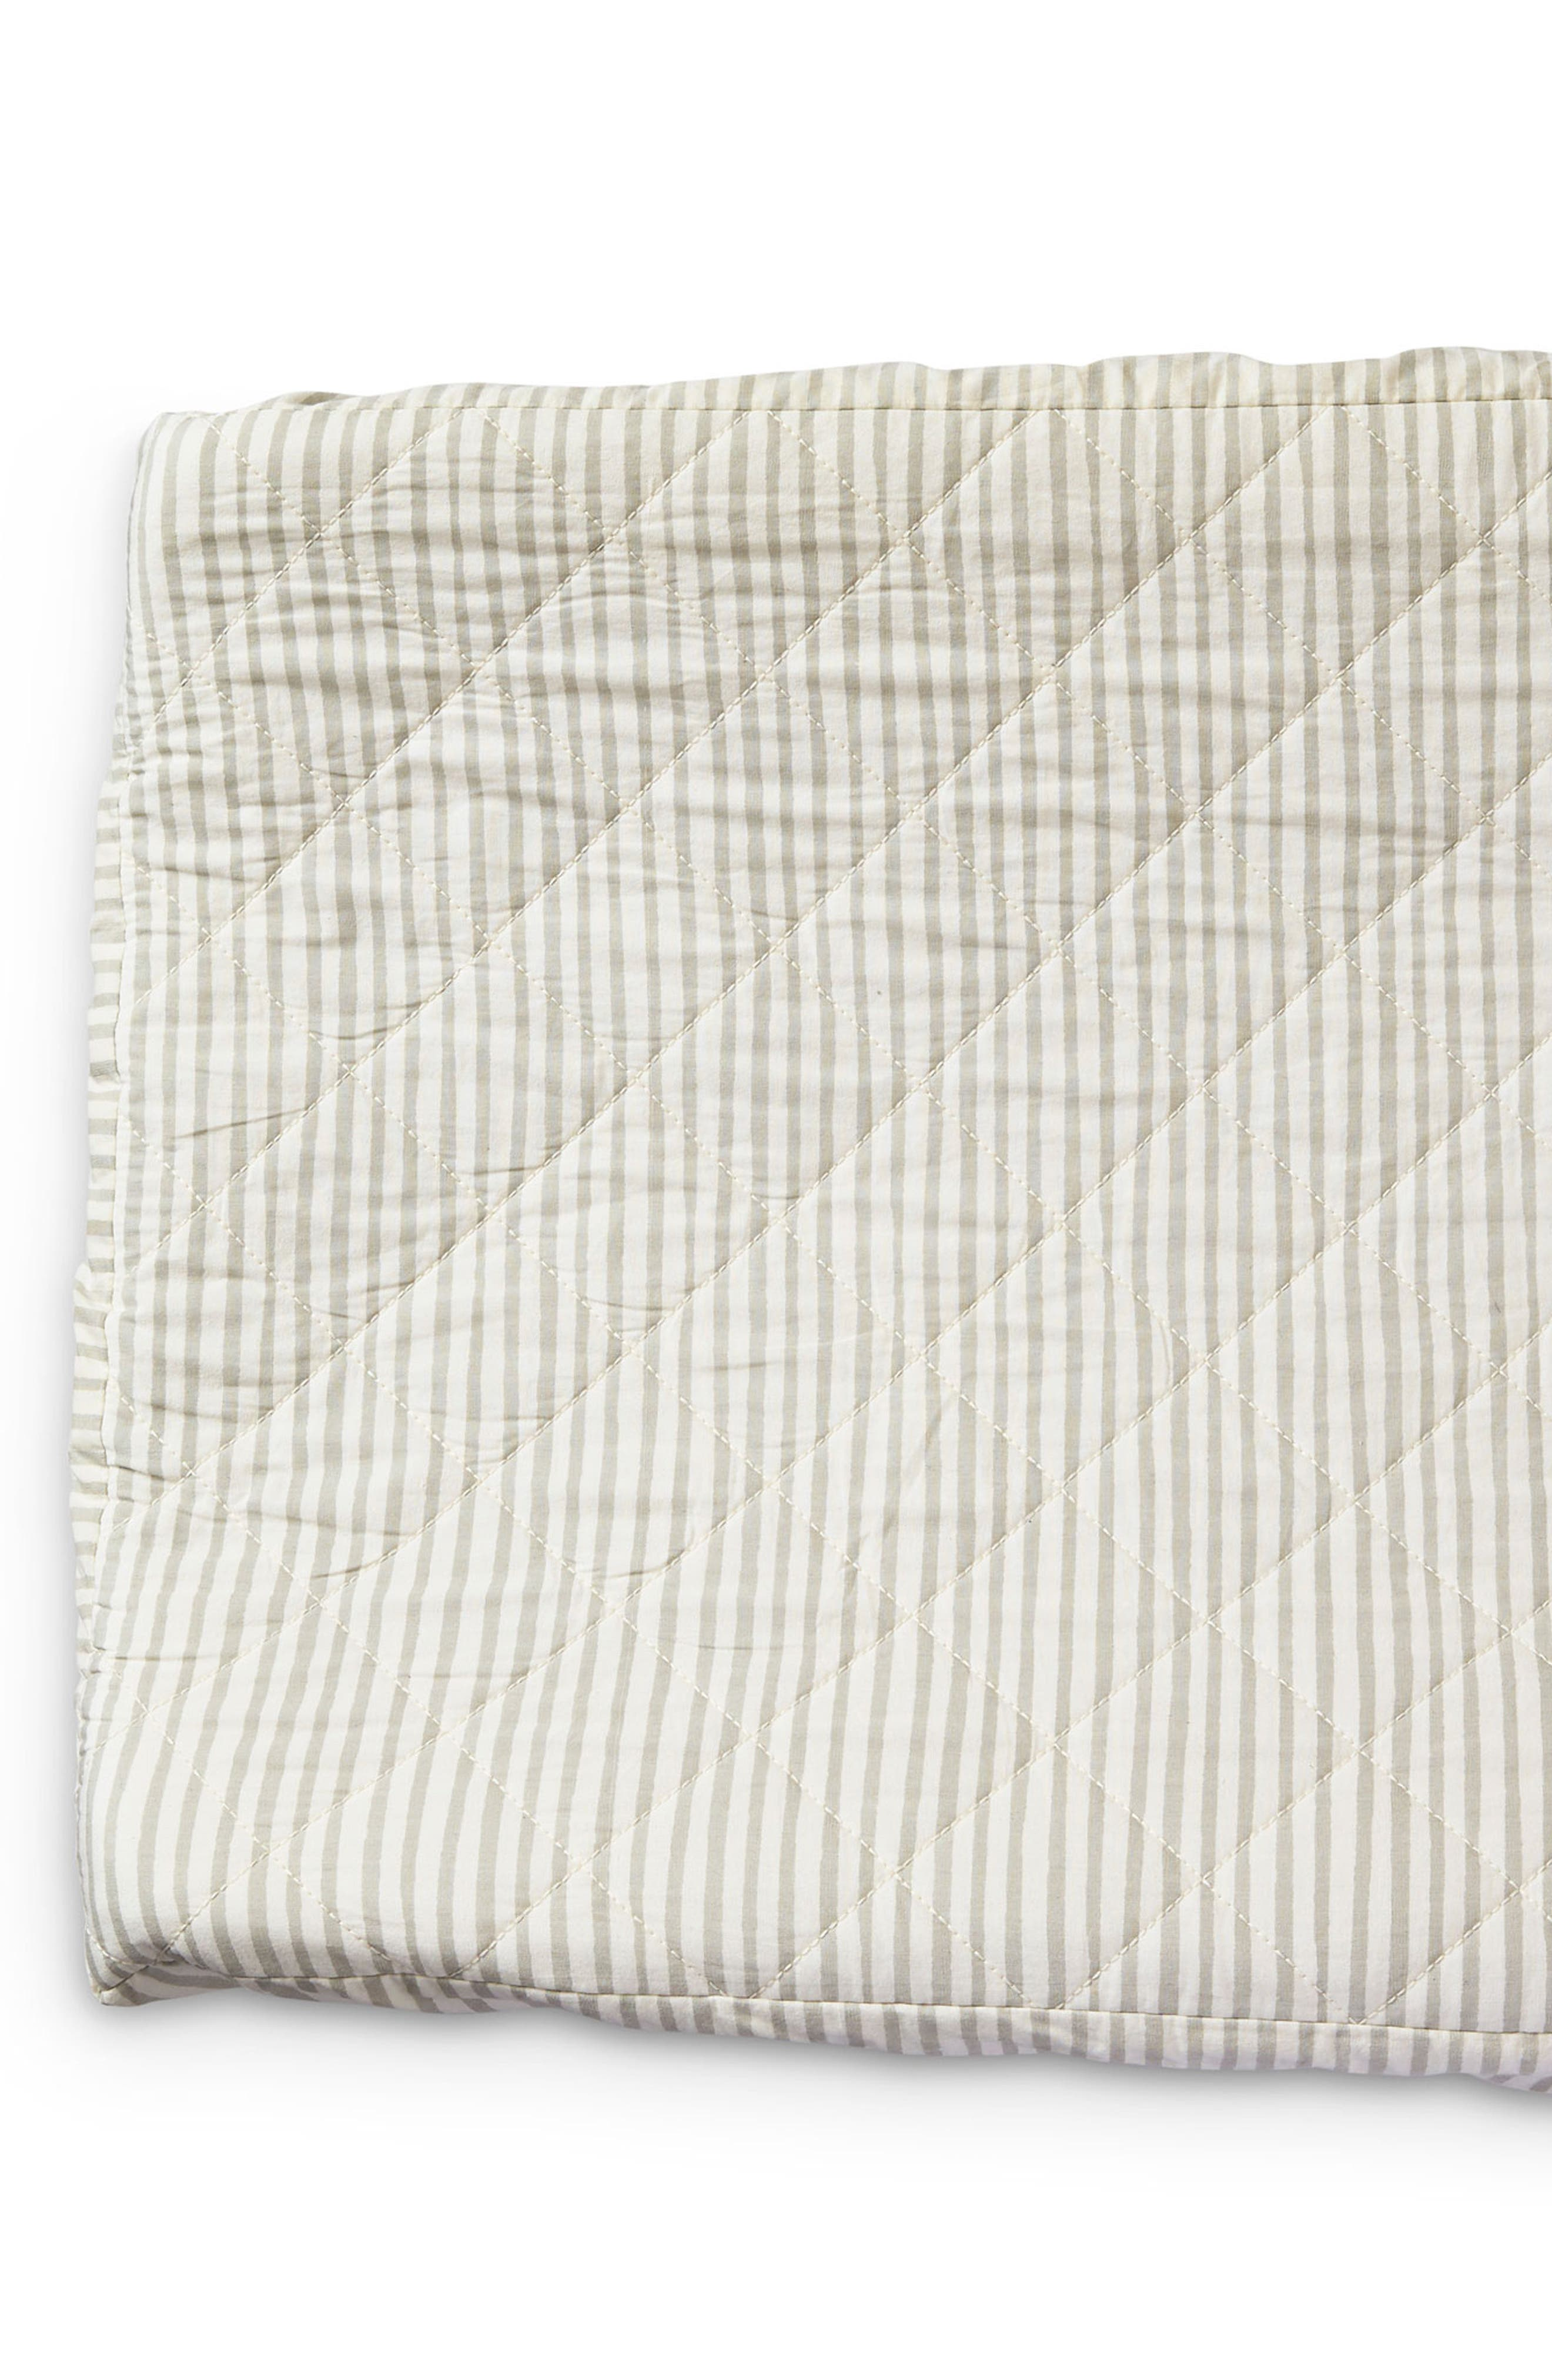 PEHR,                             Stripes Away Changing Pad Cover,                             Alternate thumbnail 2, color,                             PEBBLE